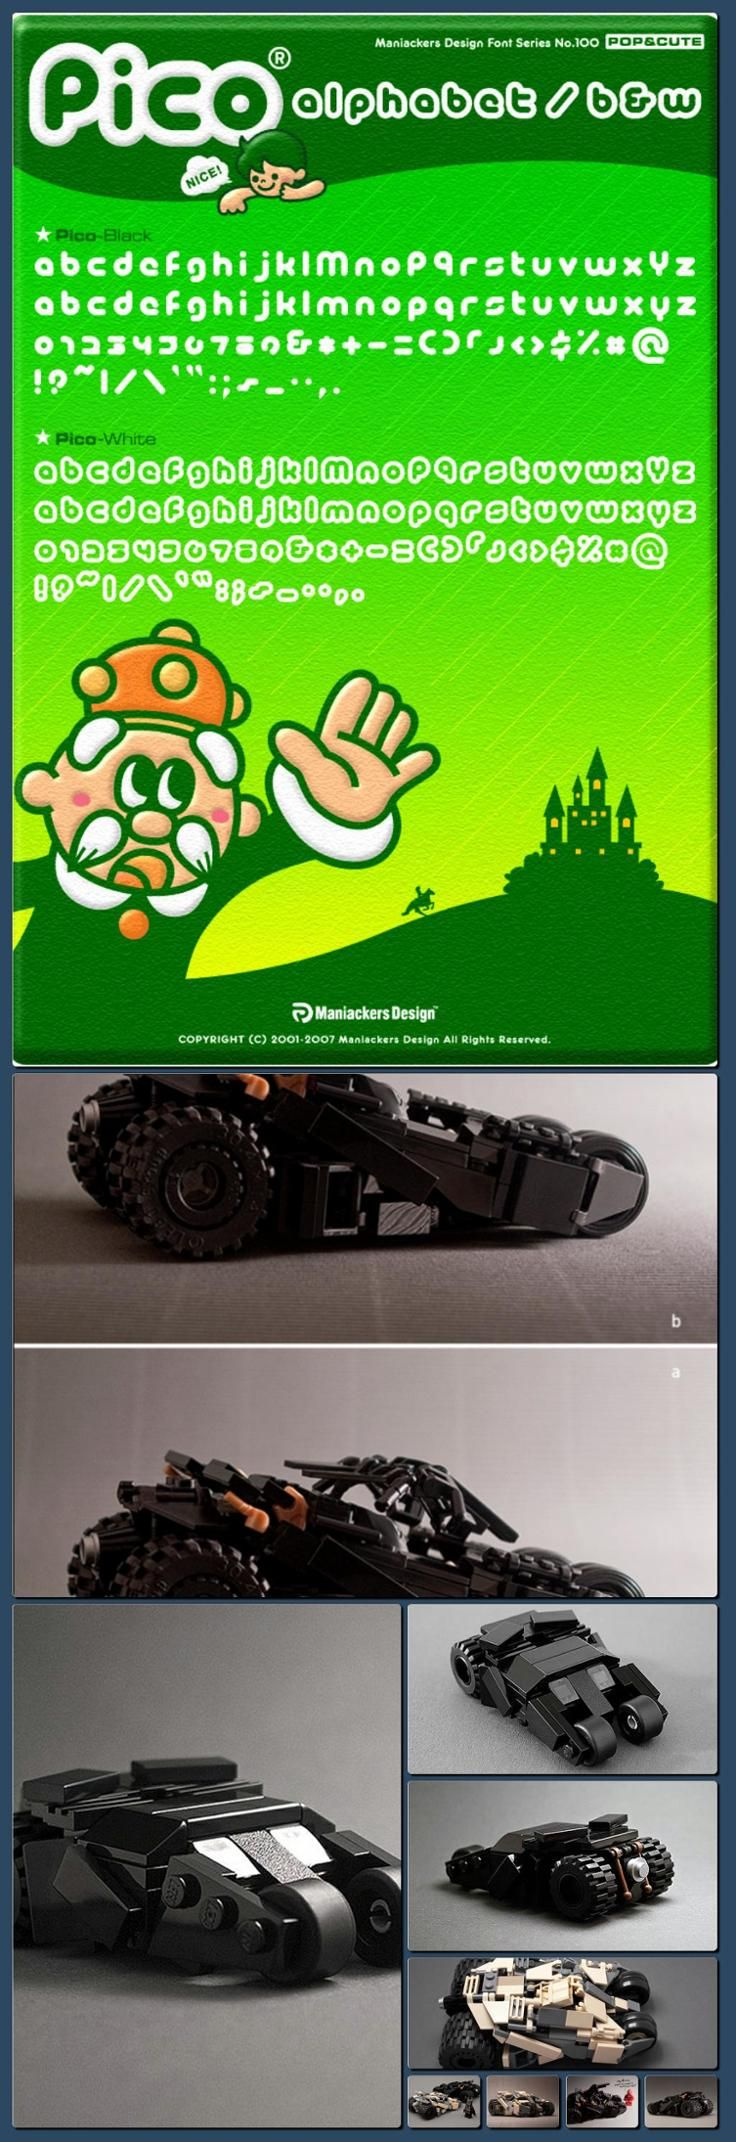 Probably The Coolest & Smallest Batman LEGO Tumbler Replica Ever [Collage made with one click using http://pagecollage.com] #pagecollage